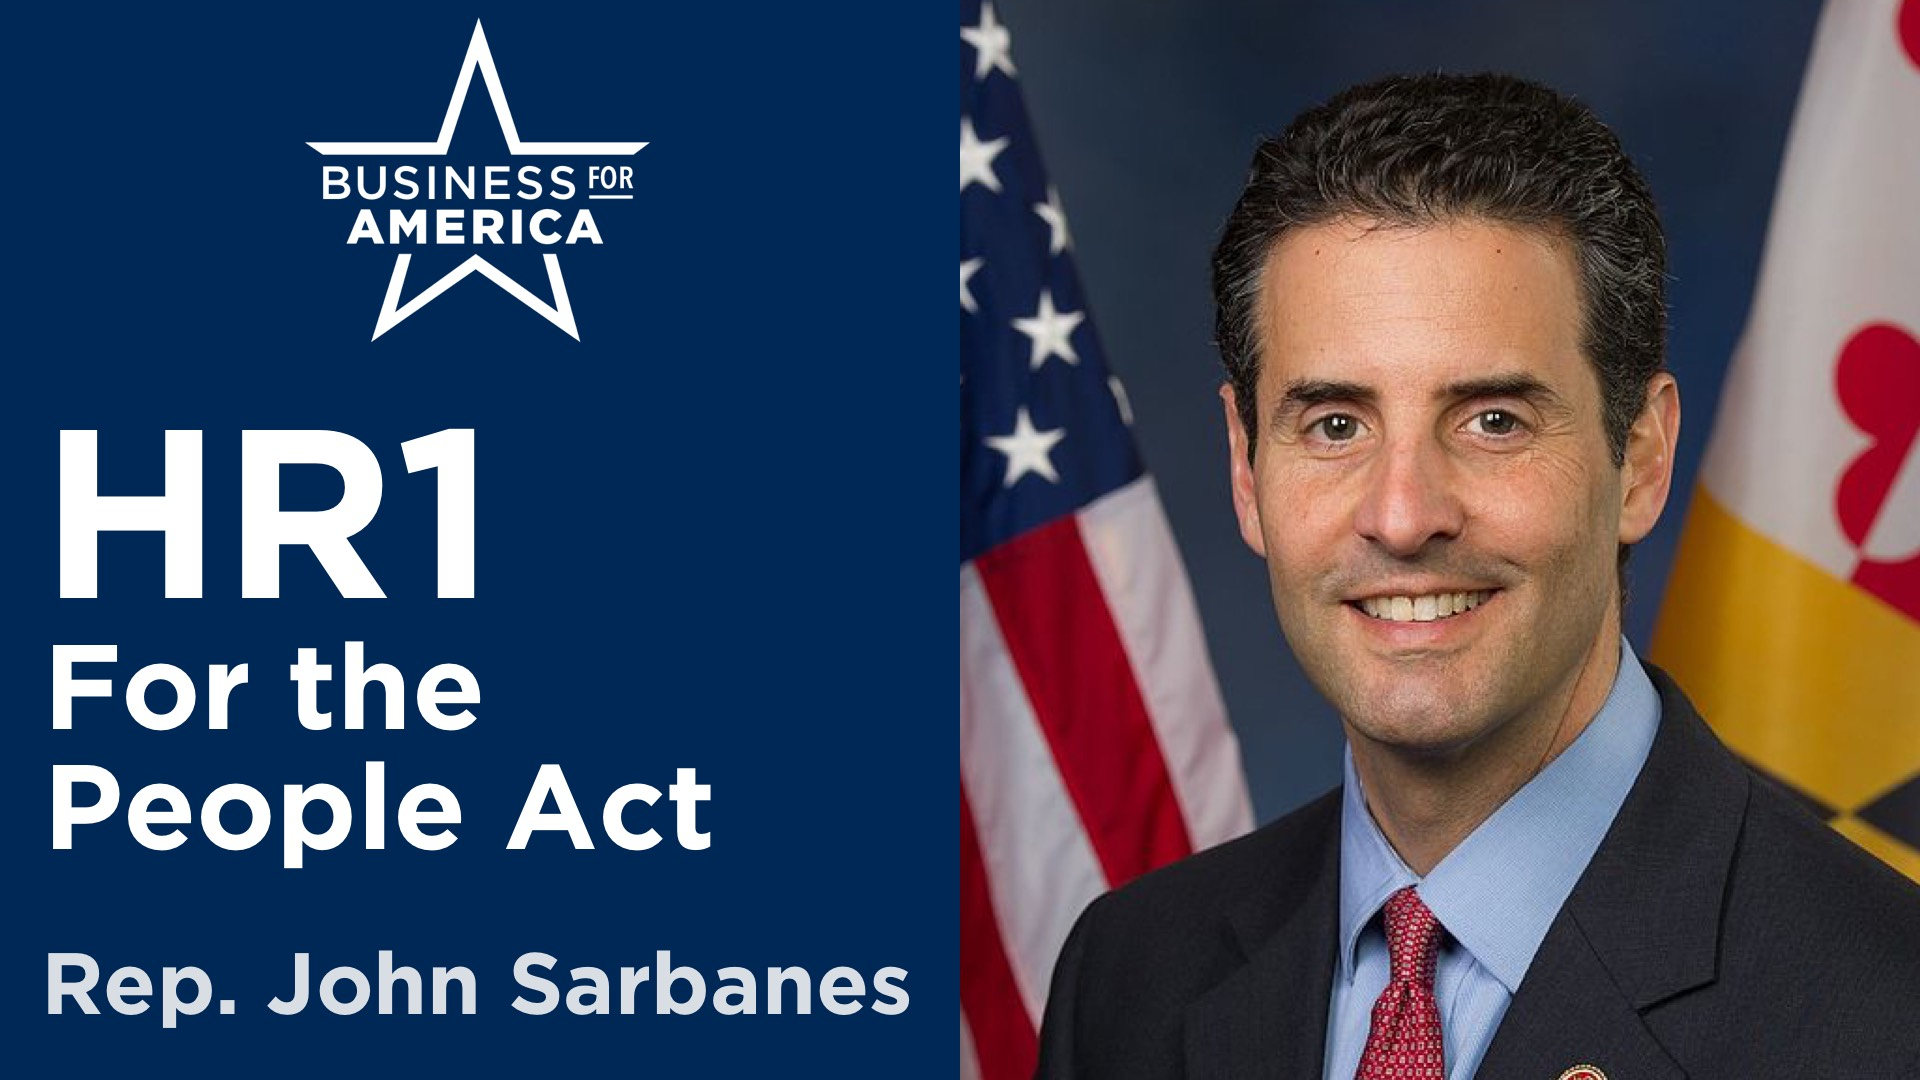 HR1 For the People Act 2021 w Rep. John Sarbanes (D-MD)